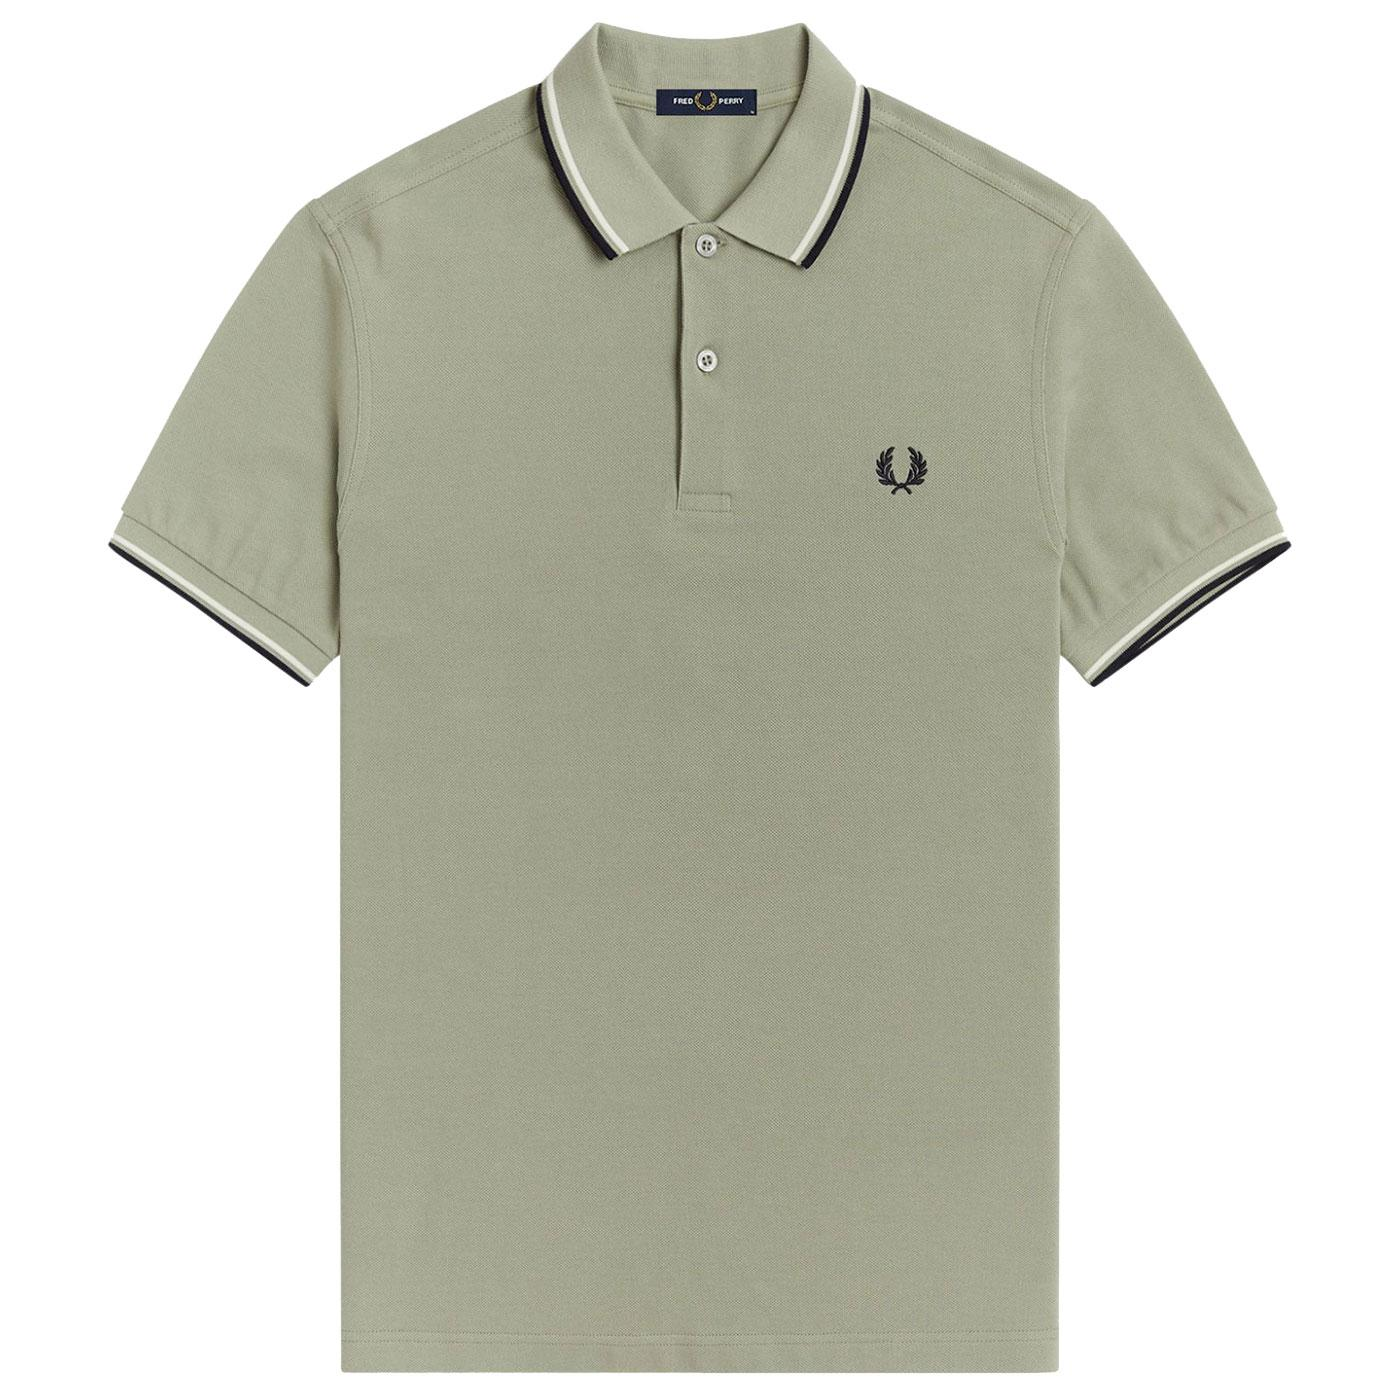 FRED PERRY M3600 Mod Twin Tipped Pique Polo S